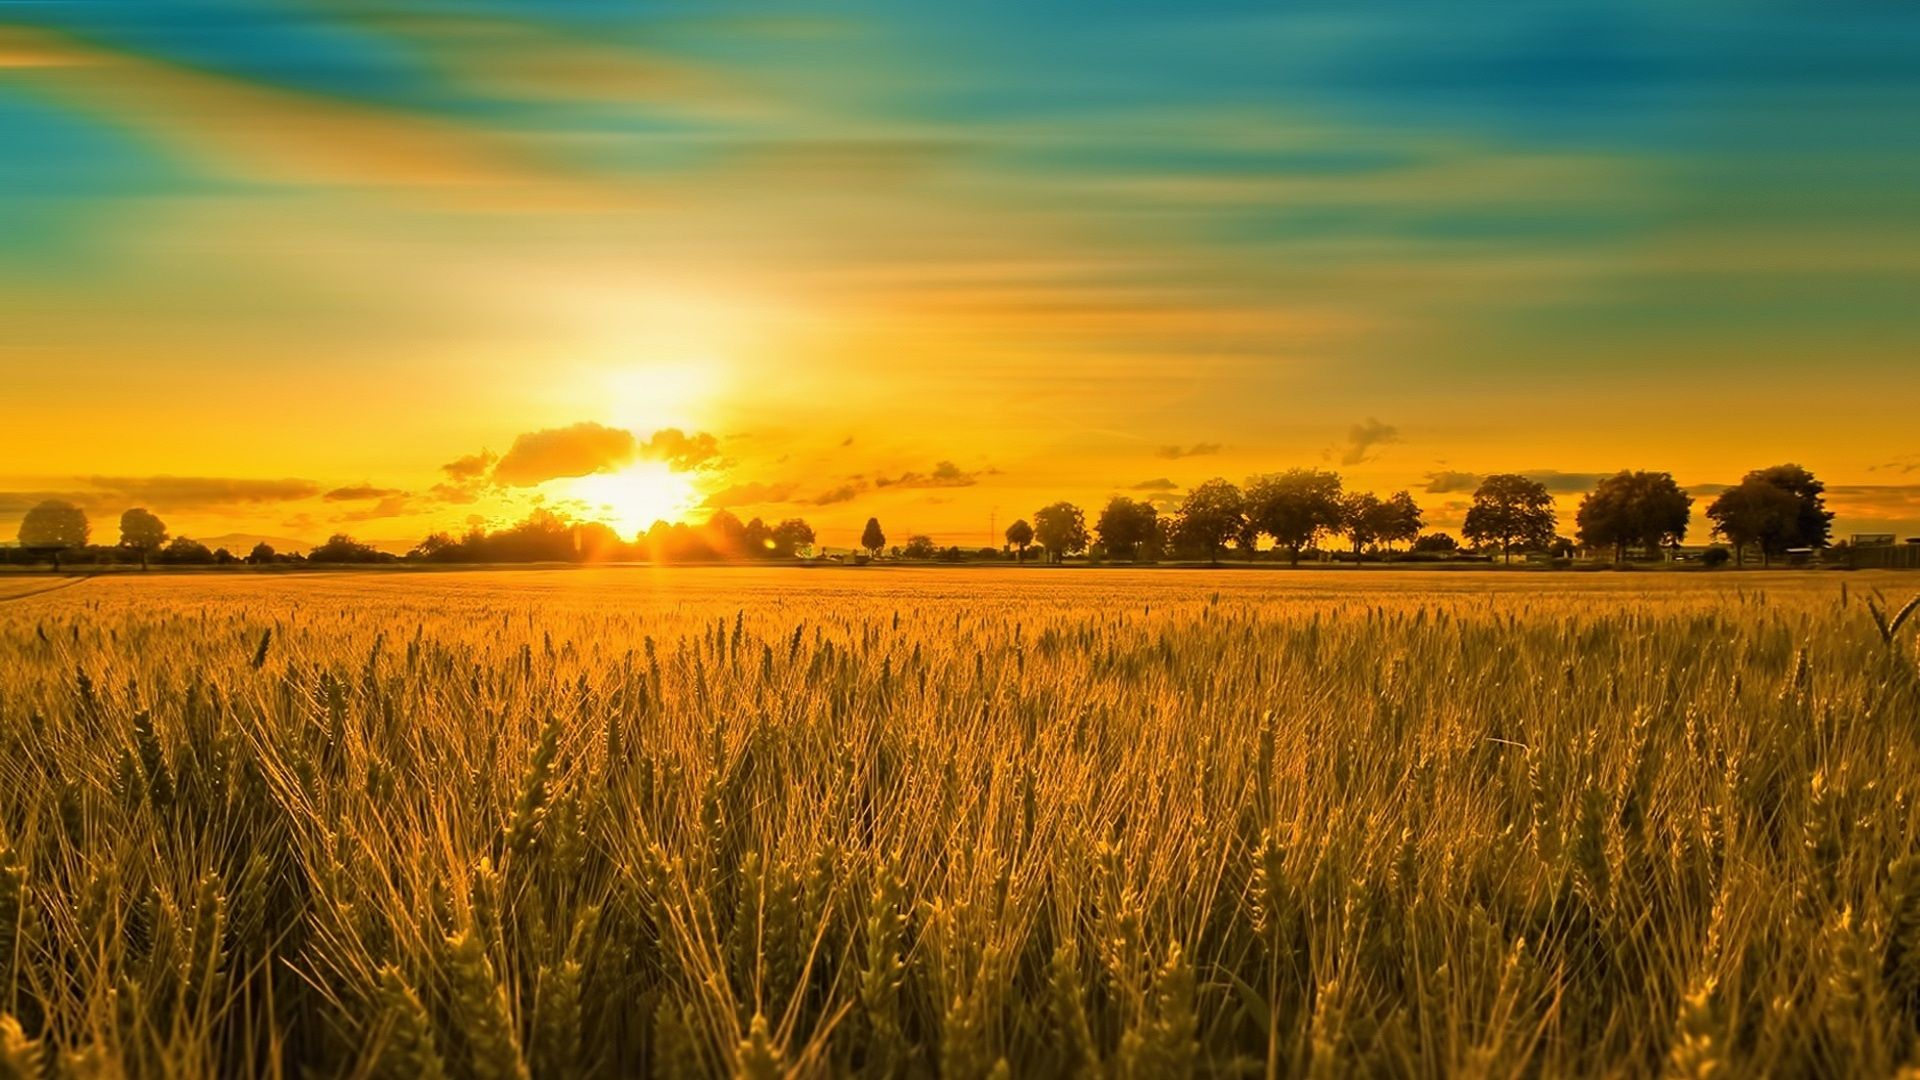 summer sunset landscape wallpaper - photo #4